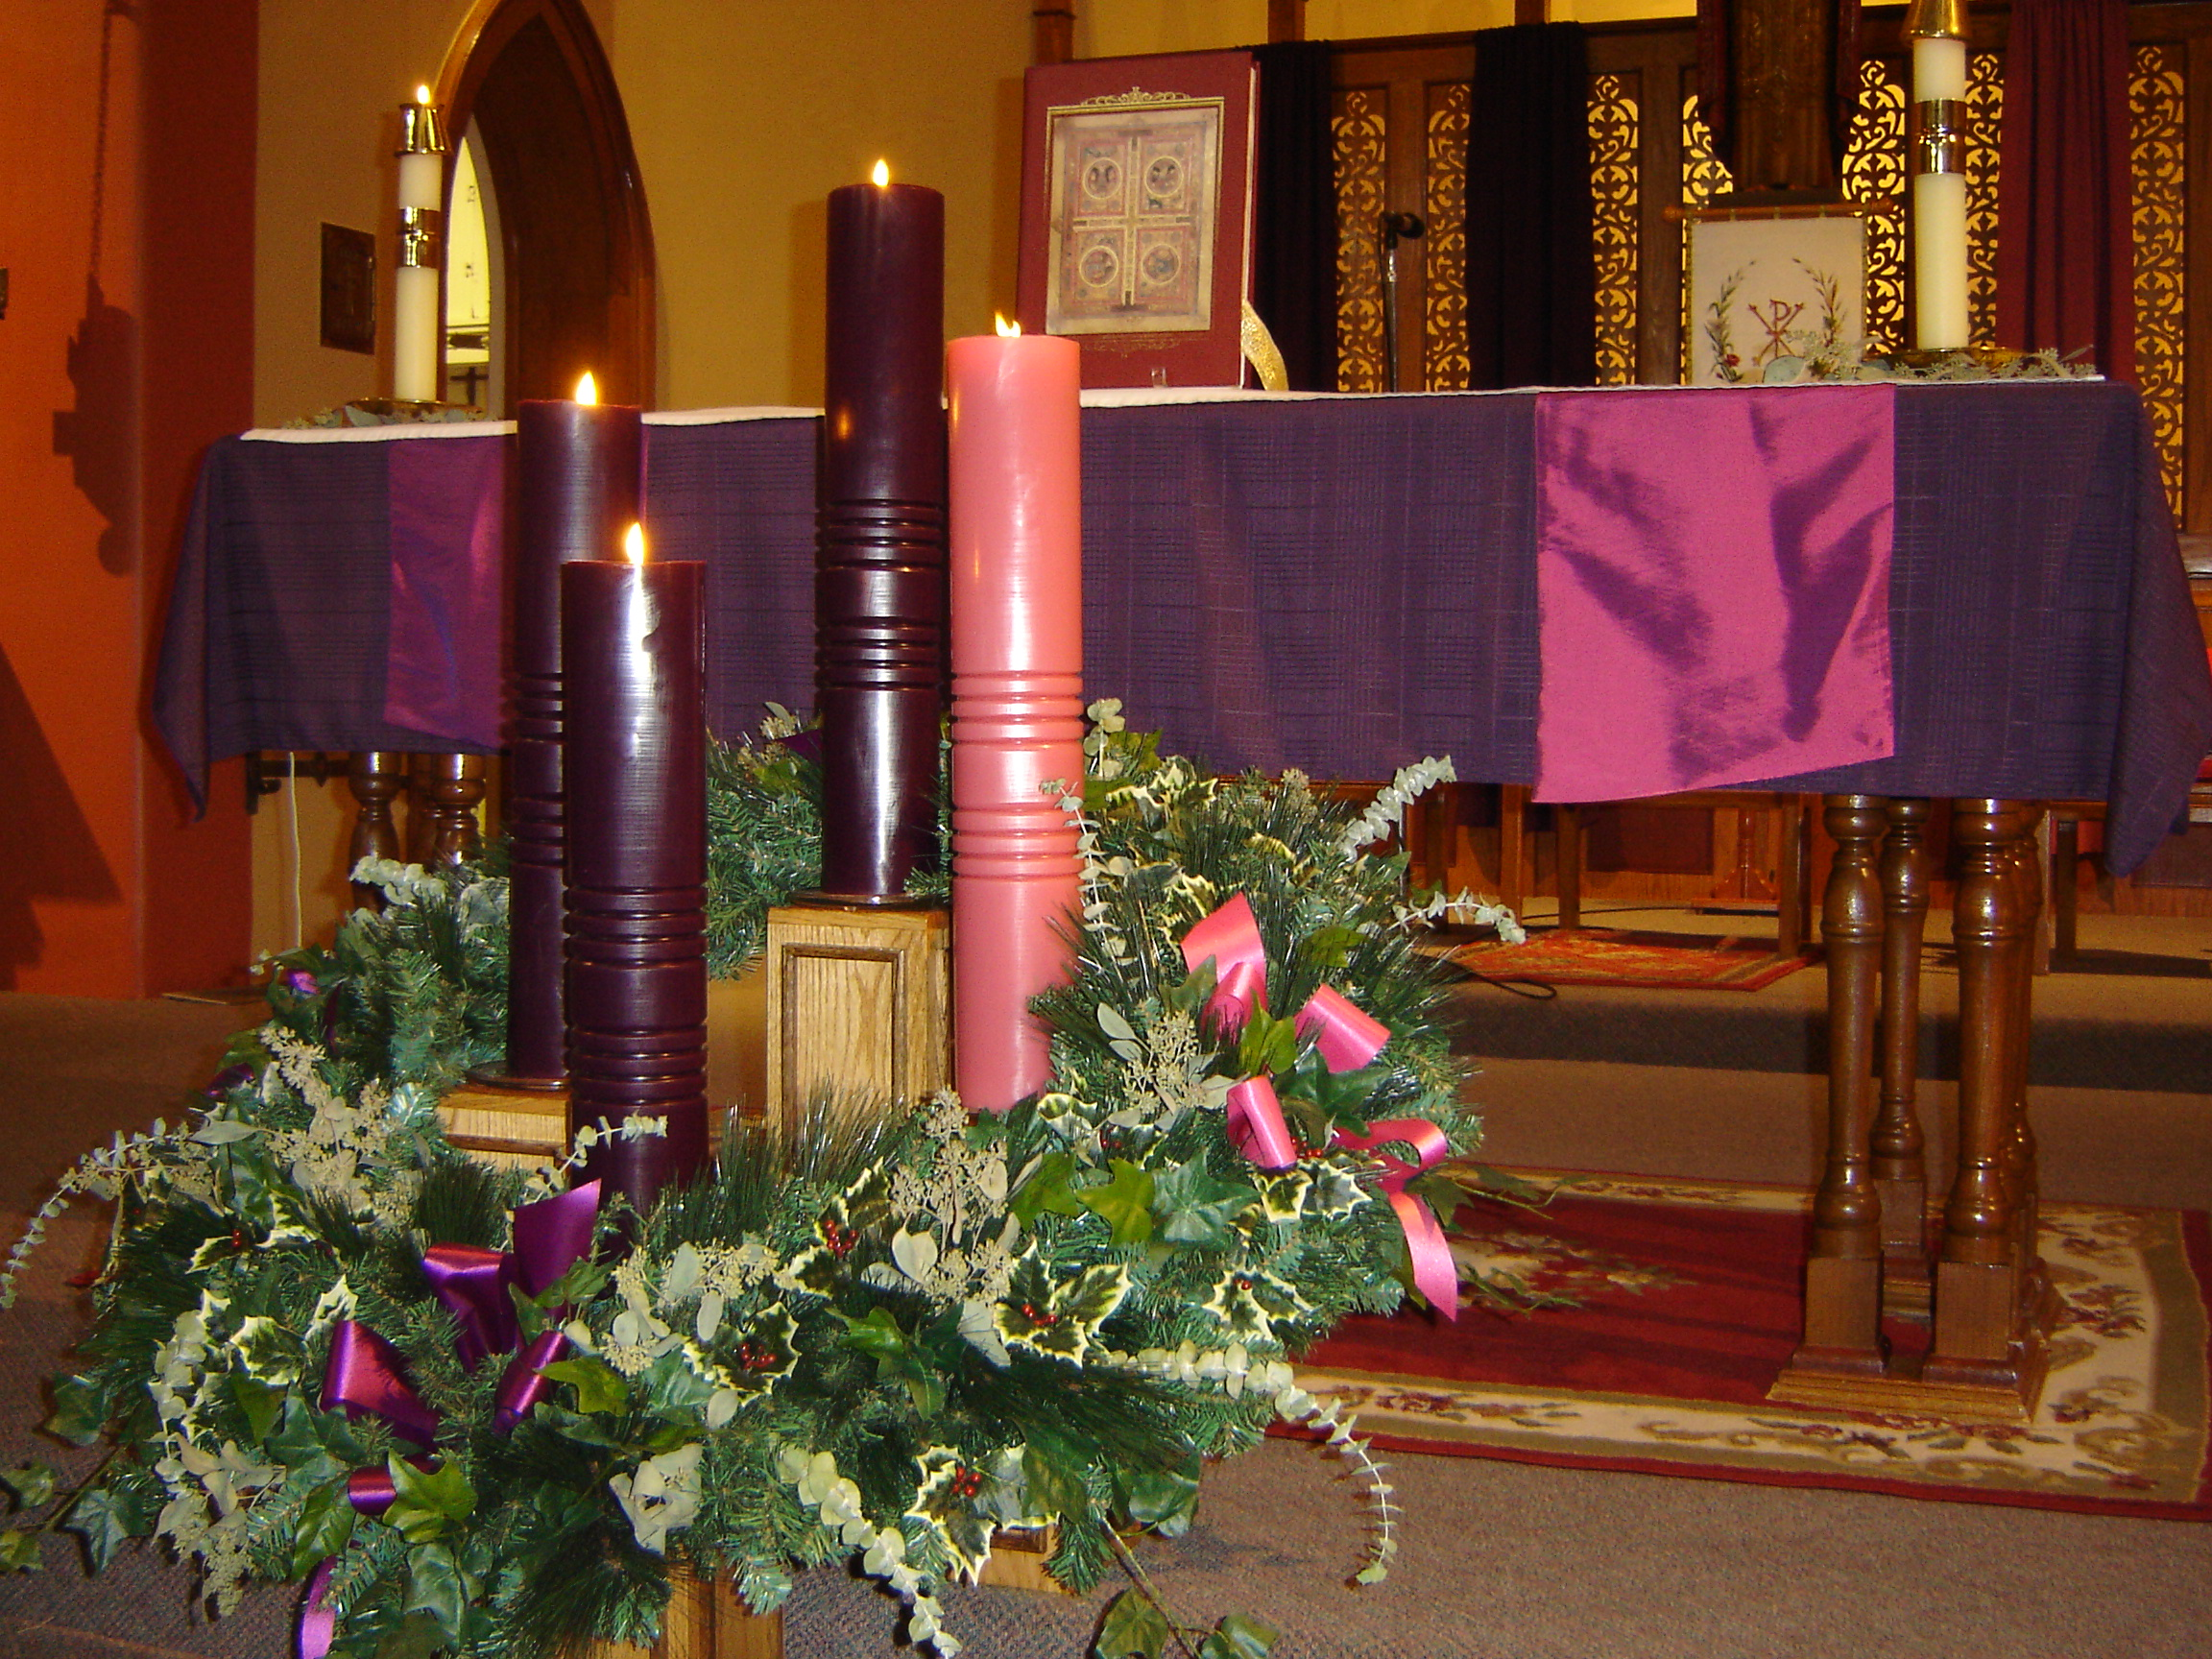 These weeks before Christmas-Advent